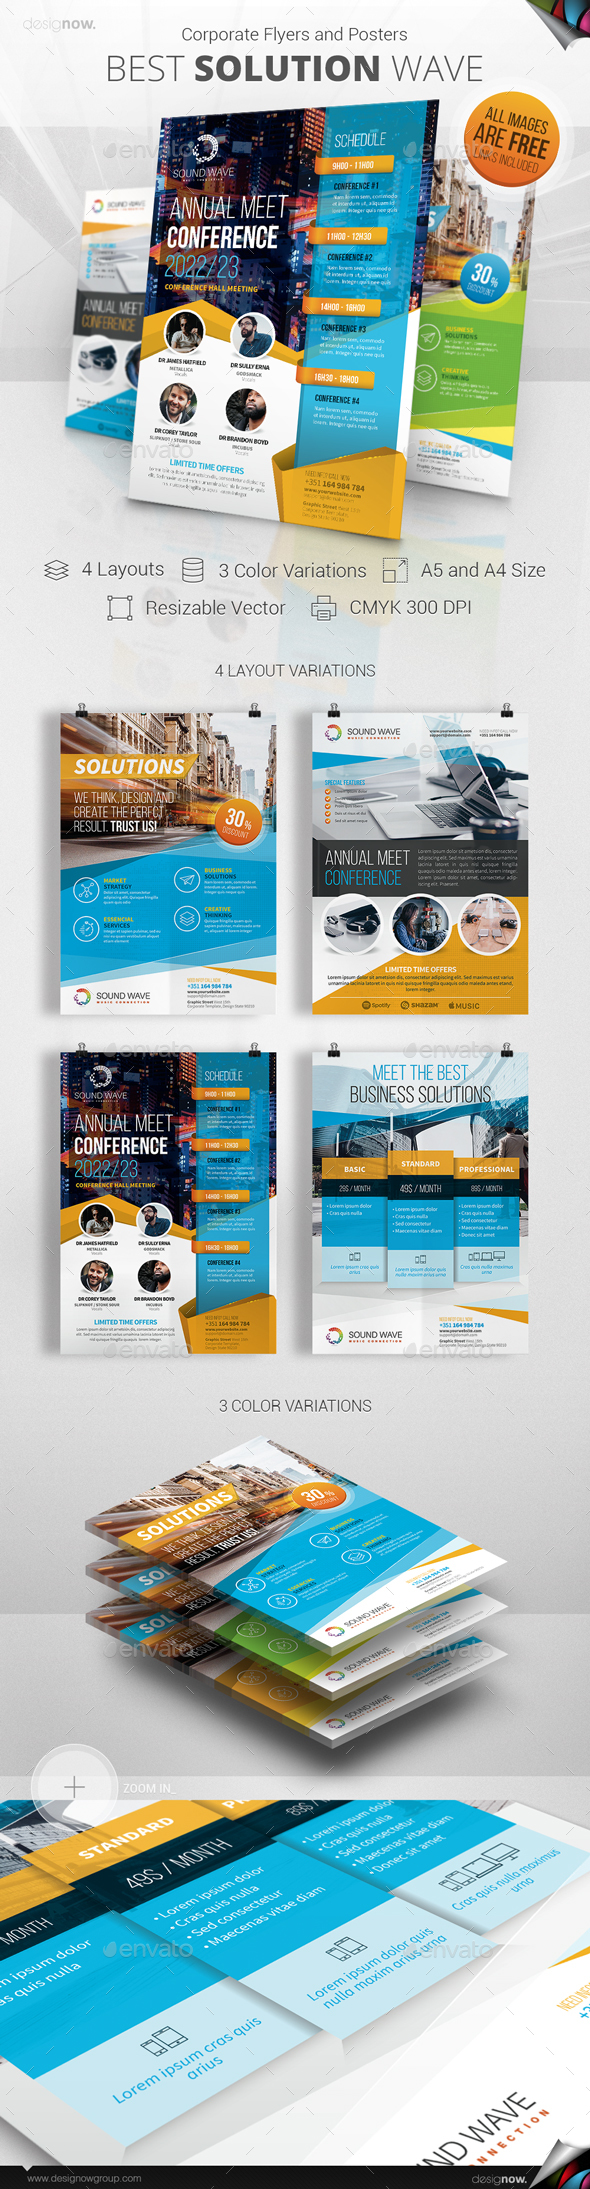 Flyer and Poster - Best Solutions - Corporate Flyers